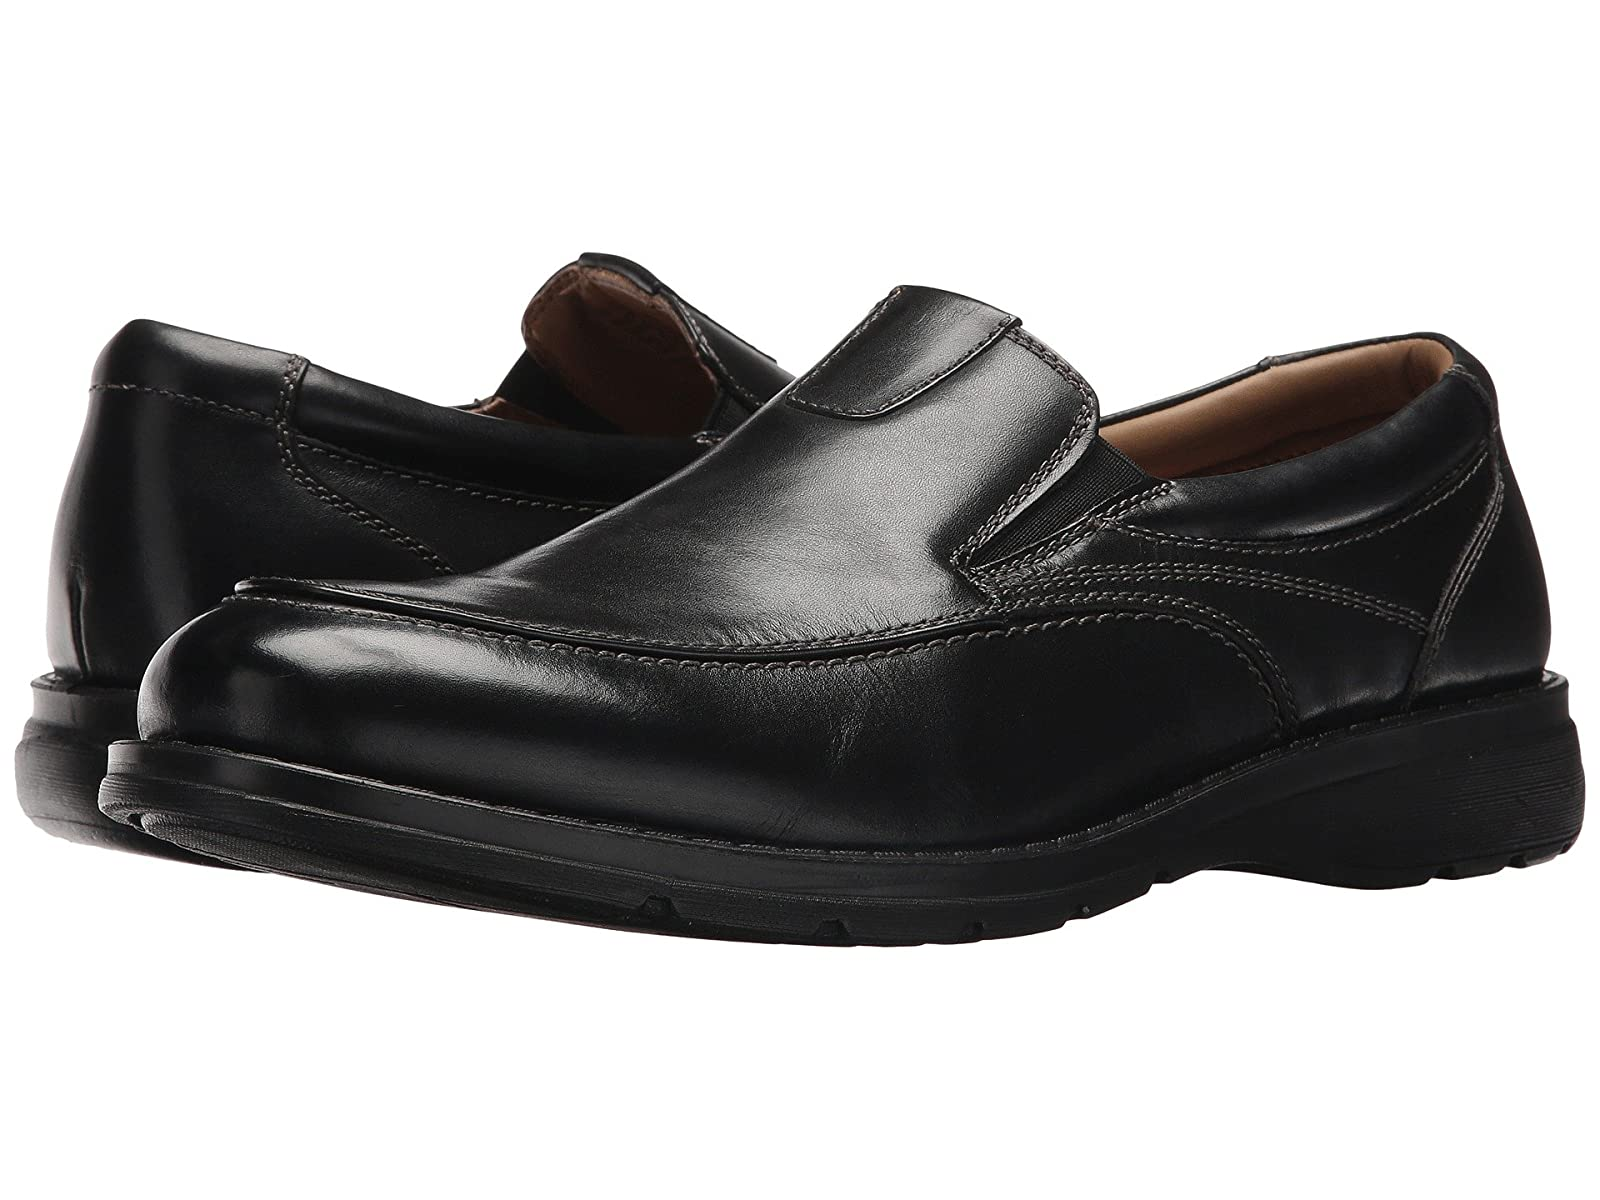 Dockers Calamar Moc Toe LoaferAtmospheric grades have affordable shoes